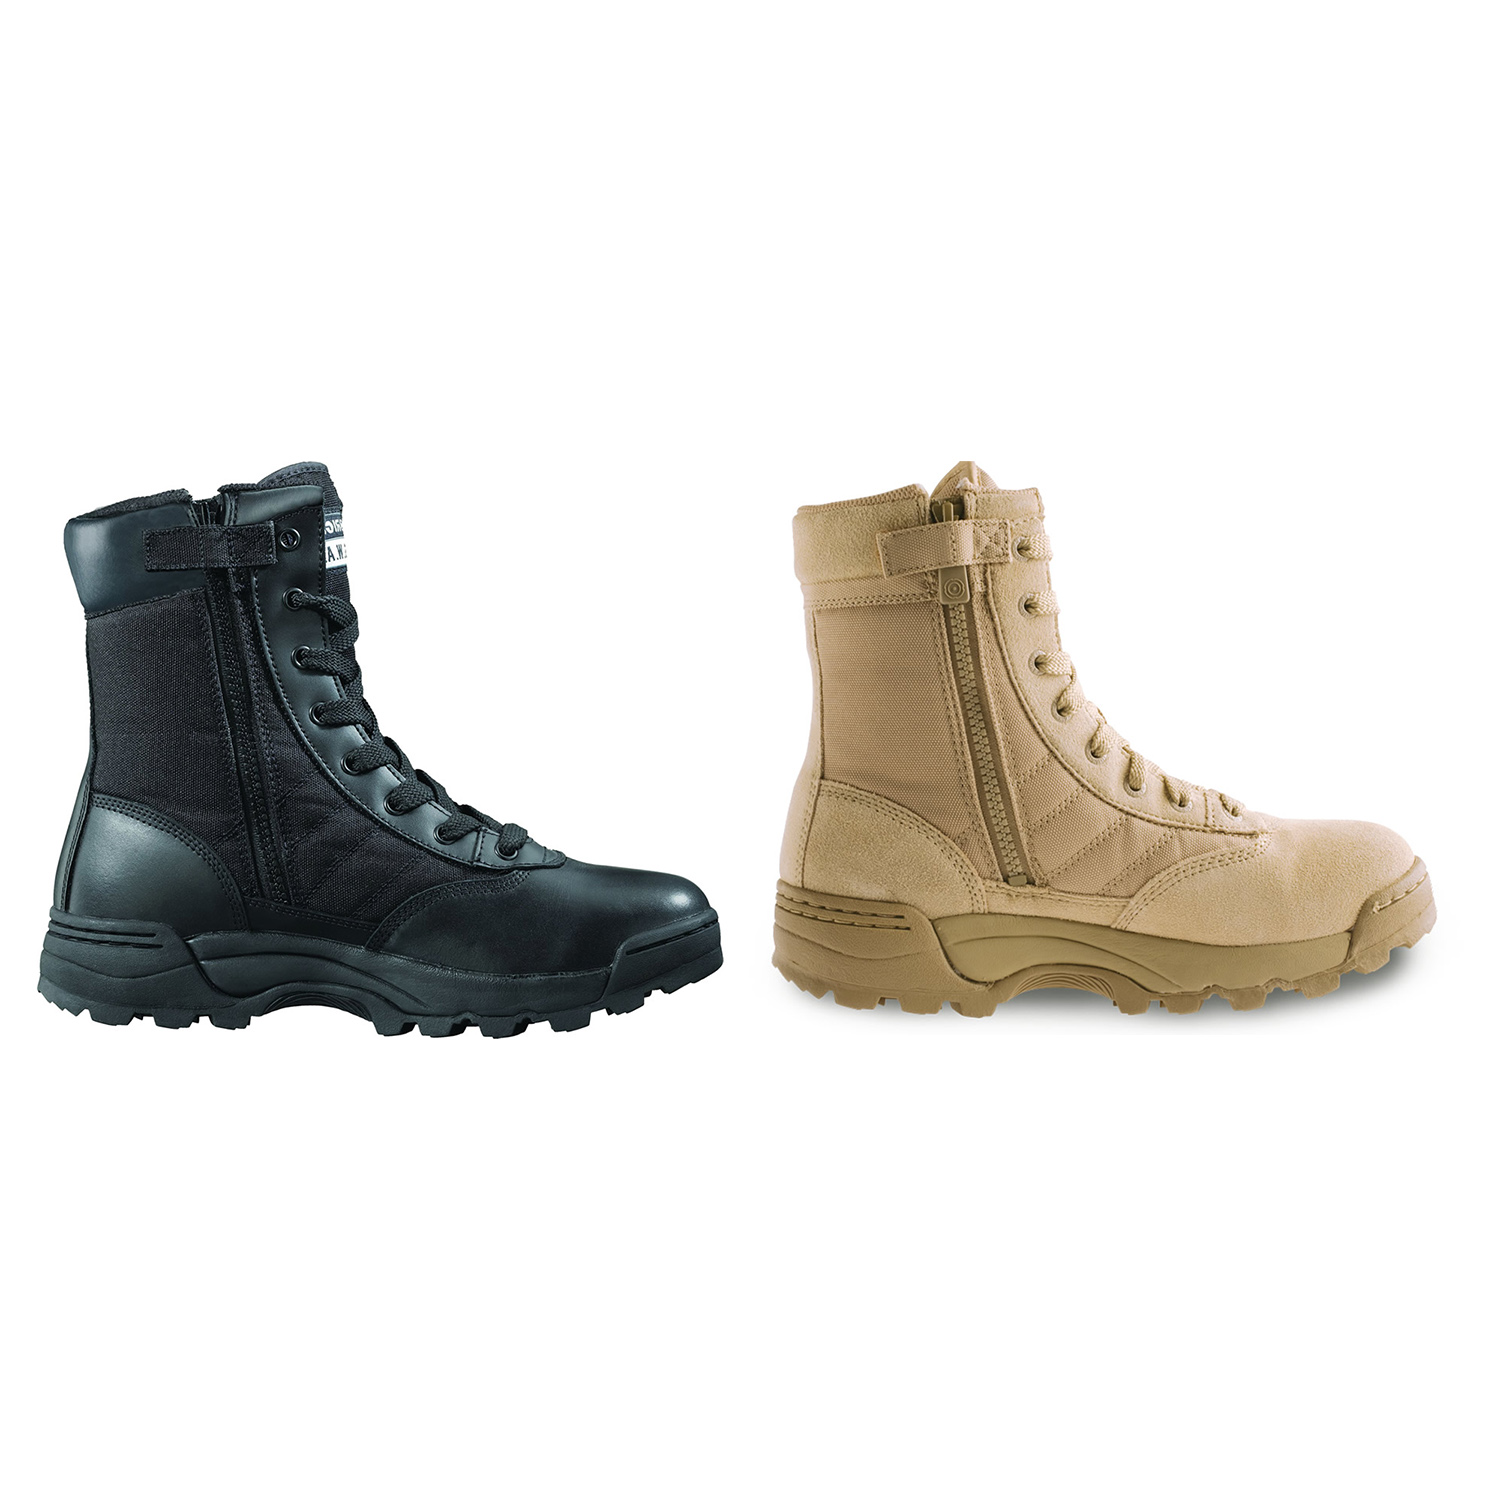 Original Swat Men's Classic 9  Tactical Police Military Boots  Side Zip 1152  first time reply